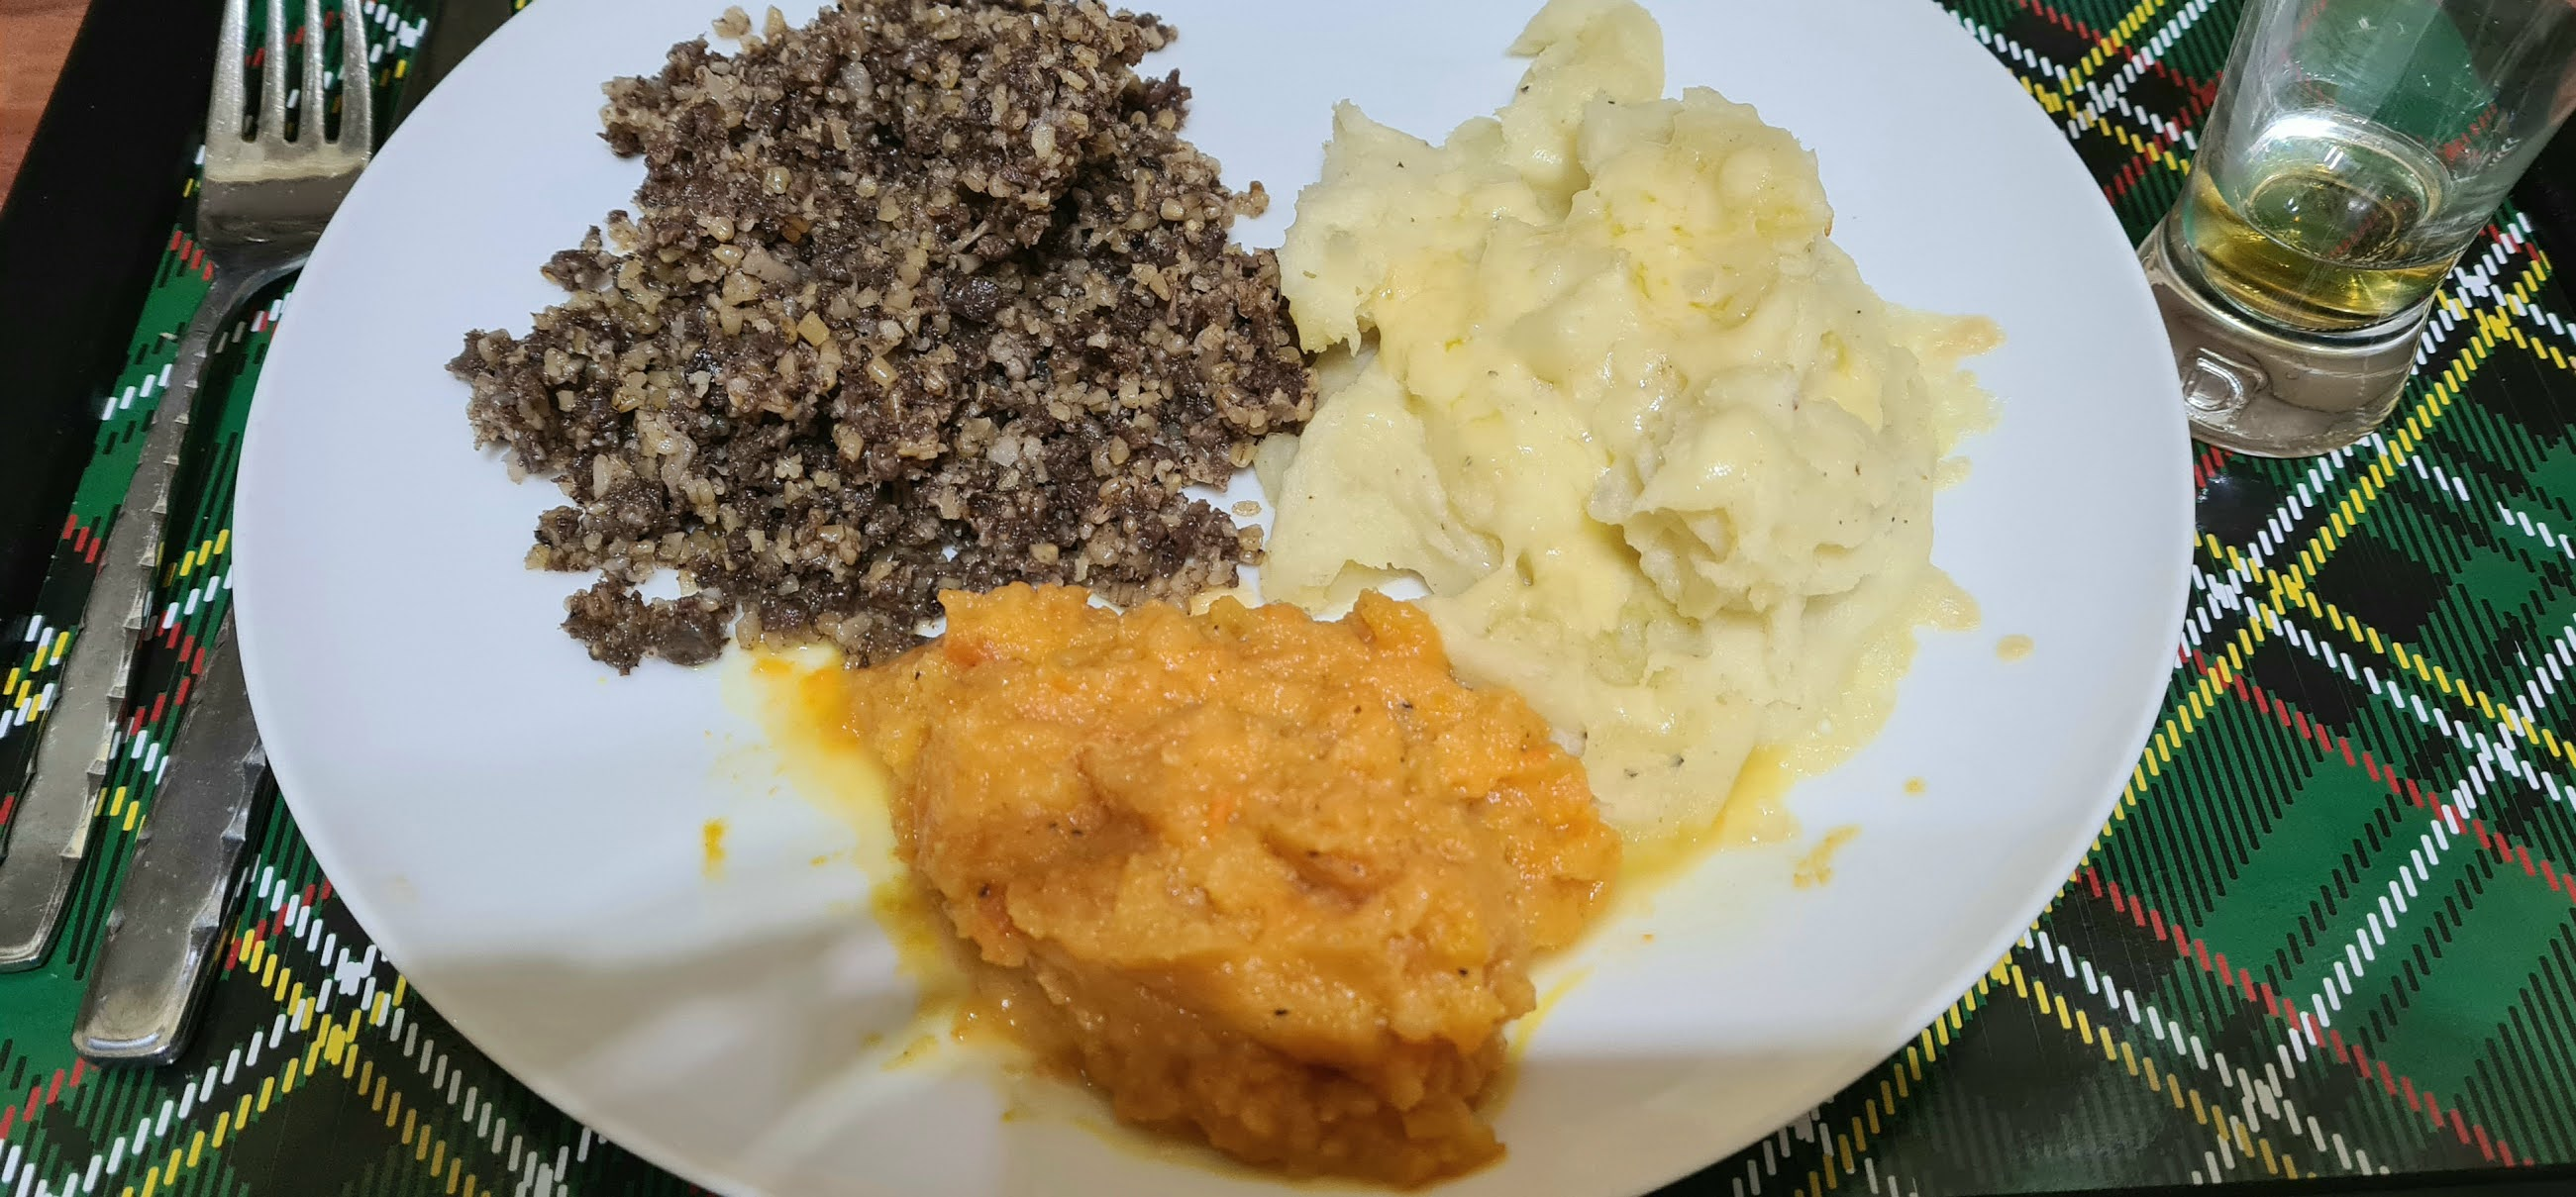 Haggis, neeps and tatties with a wee dram of whisky: Burns Night dinner